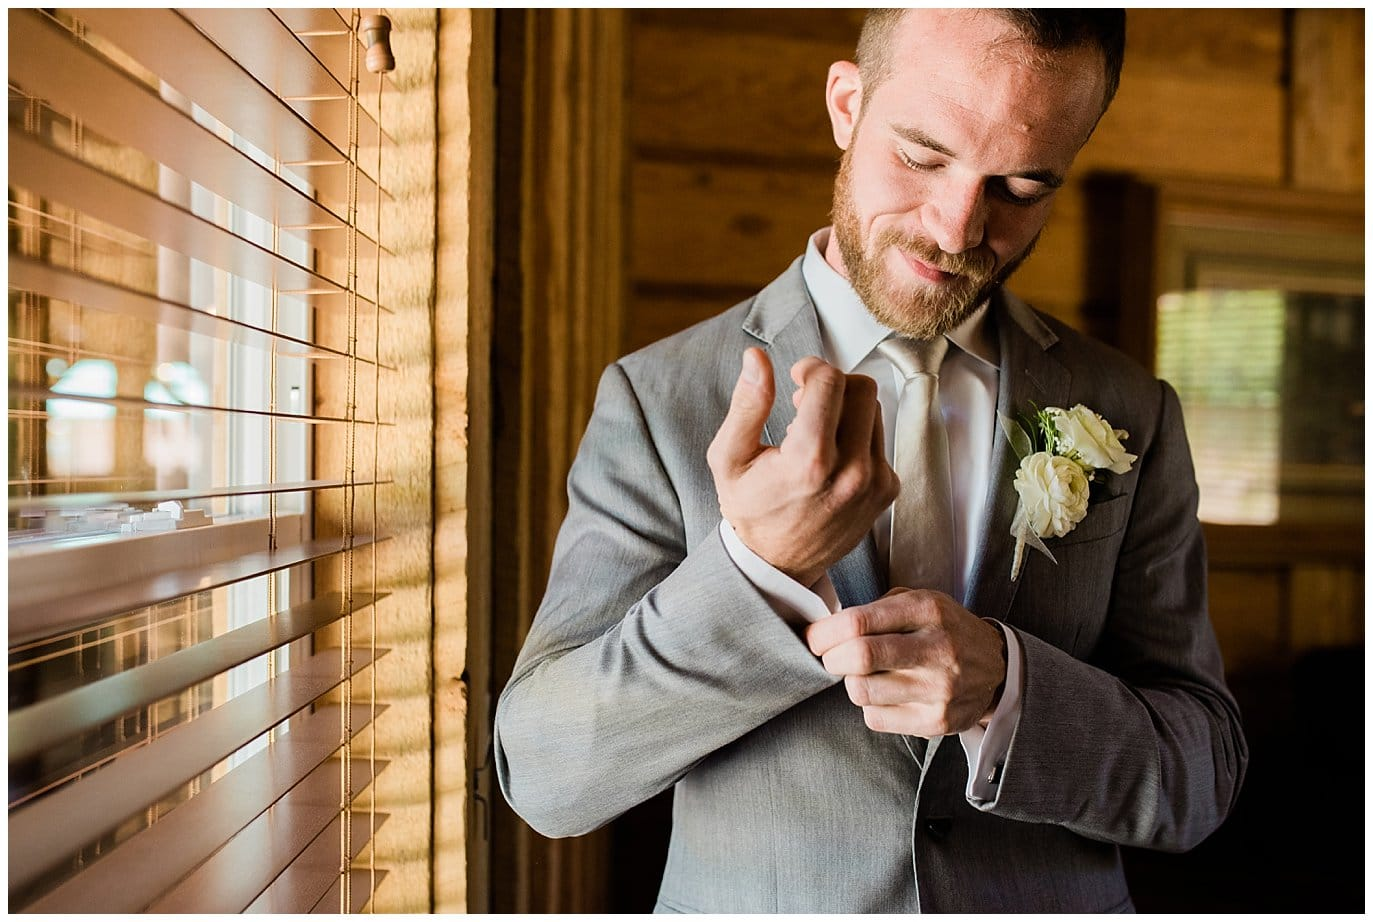 groom getting ready in Groom's Room at Summer Piney River Ranch wedding by Vail wedding photographer Jennie Crate, Photographer